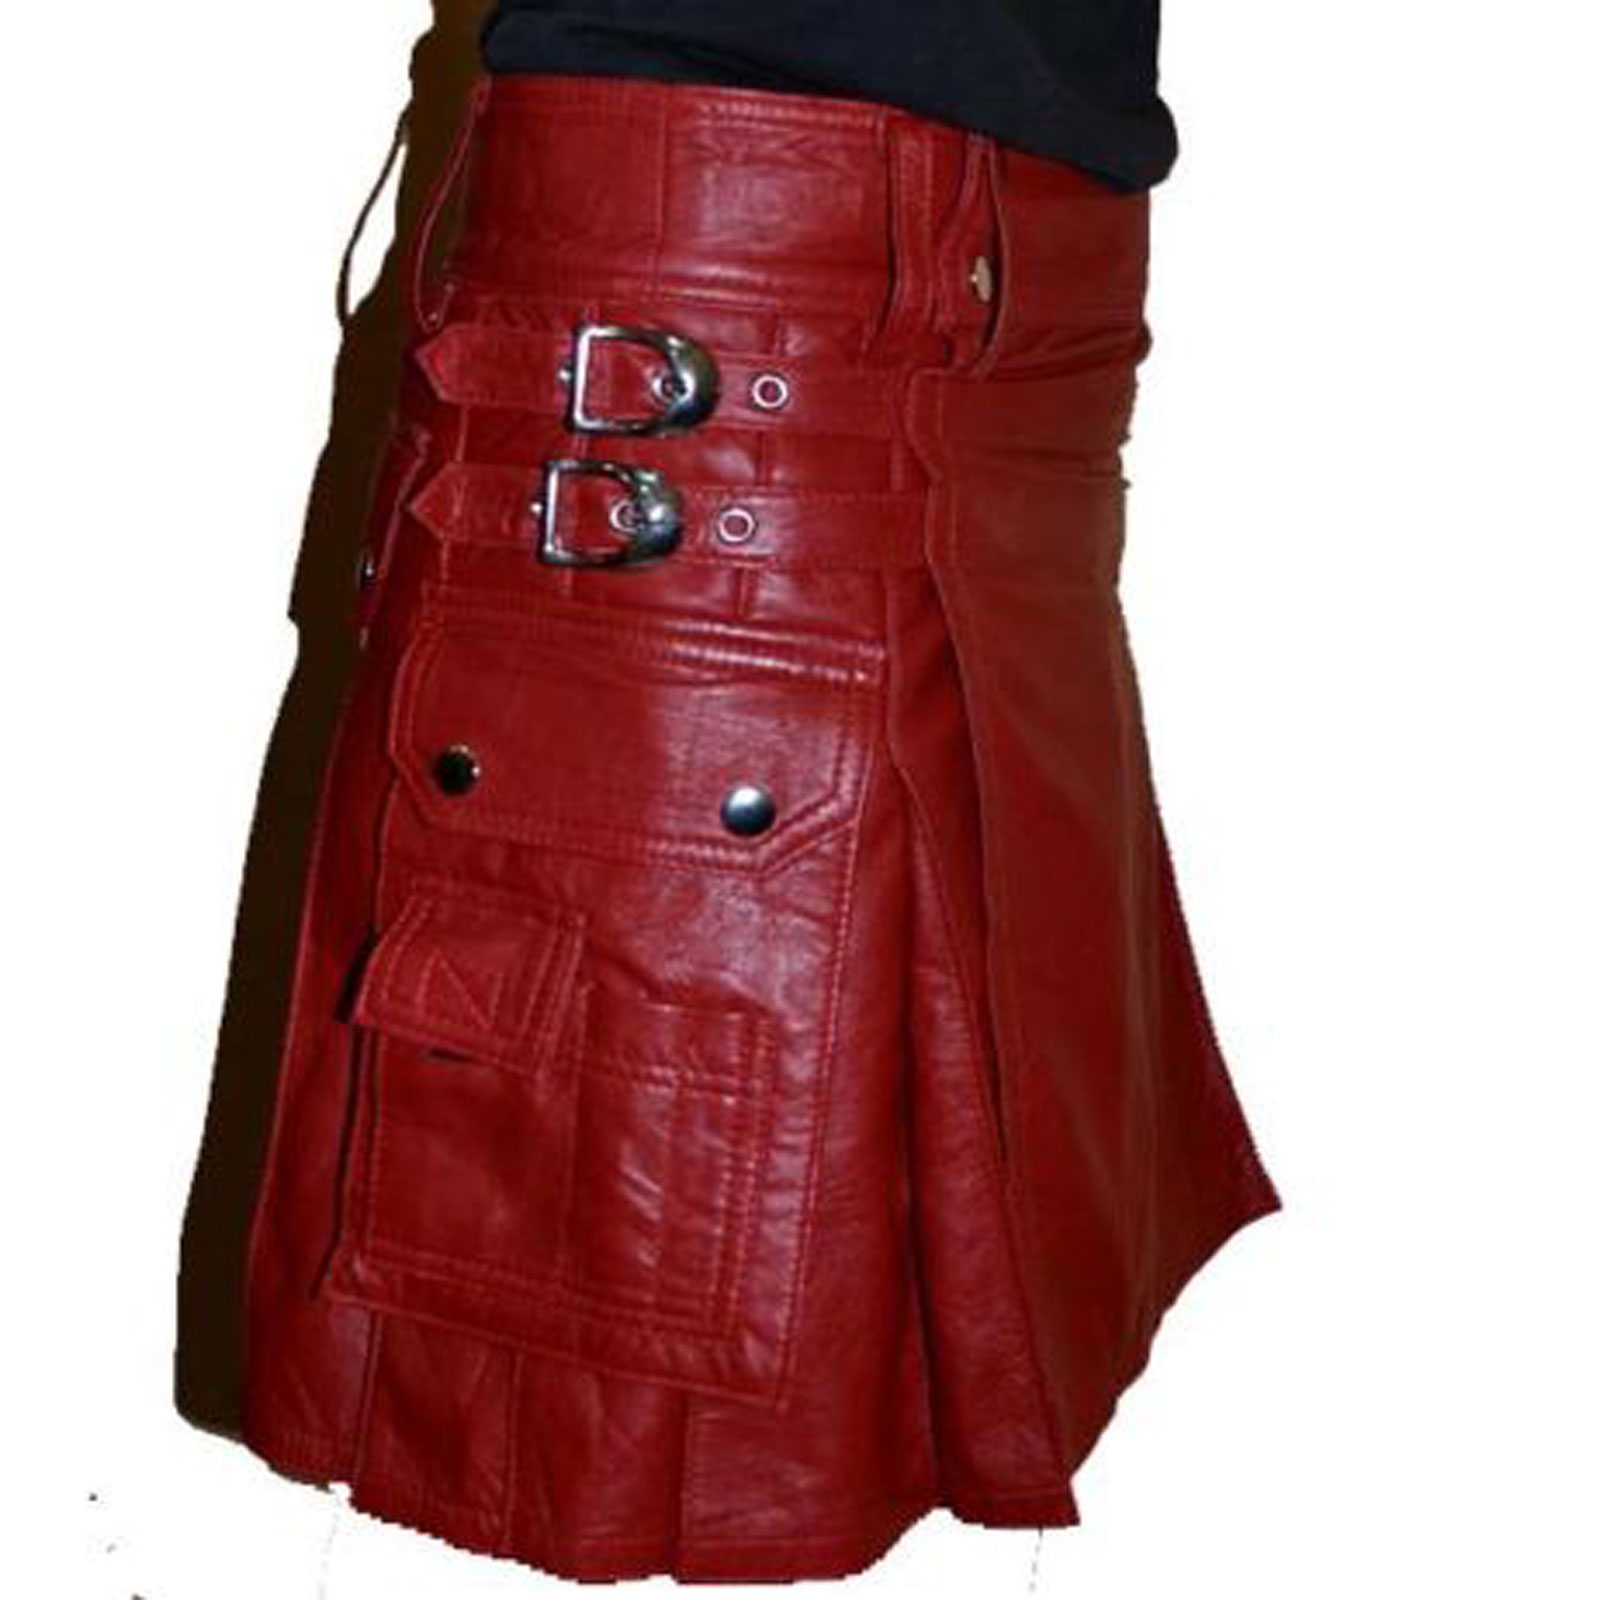 Leather Gladiator kilt Scottish Warrior kilt Pleated Style